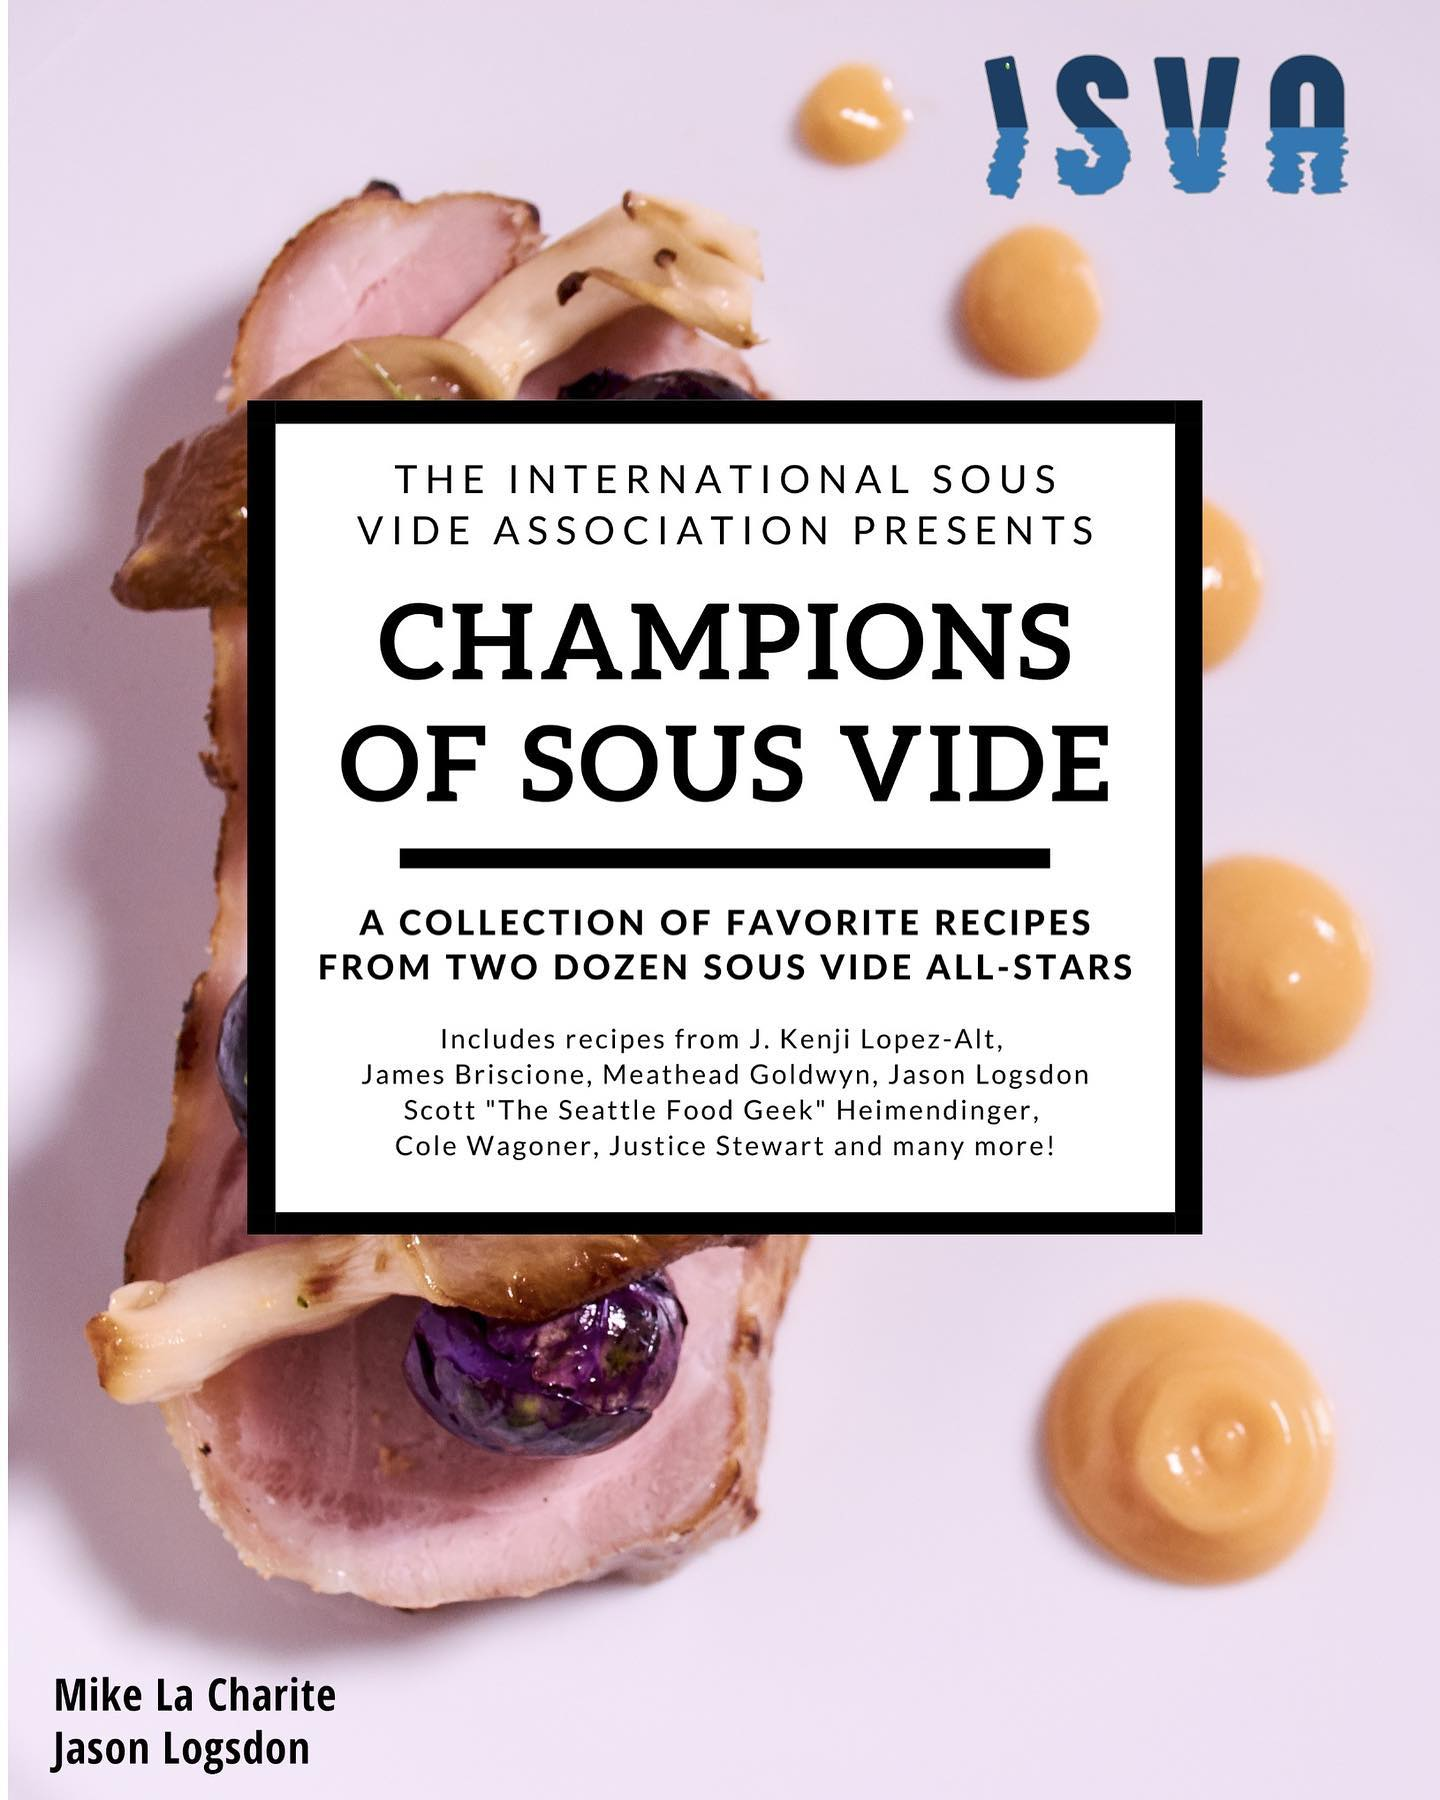 Champions of Sous Vide cookbook cover